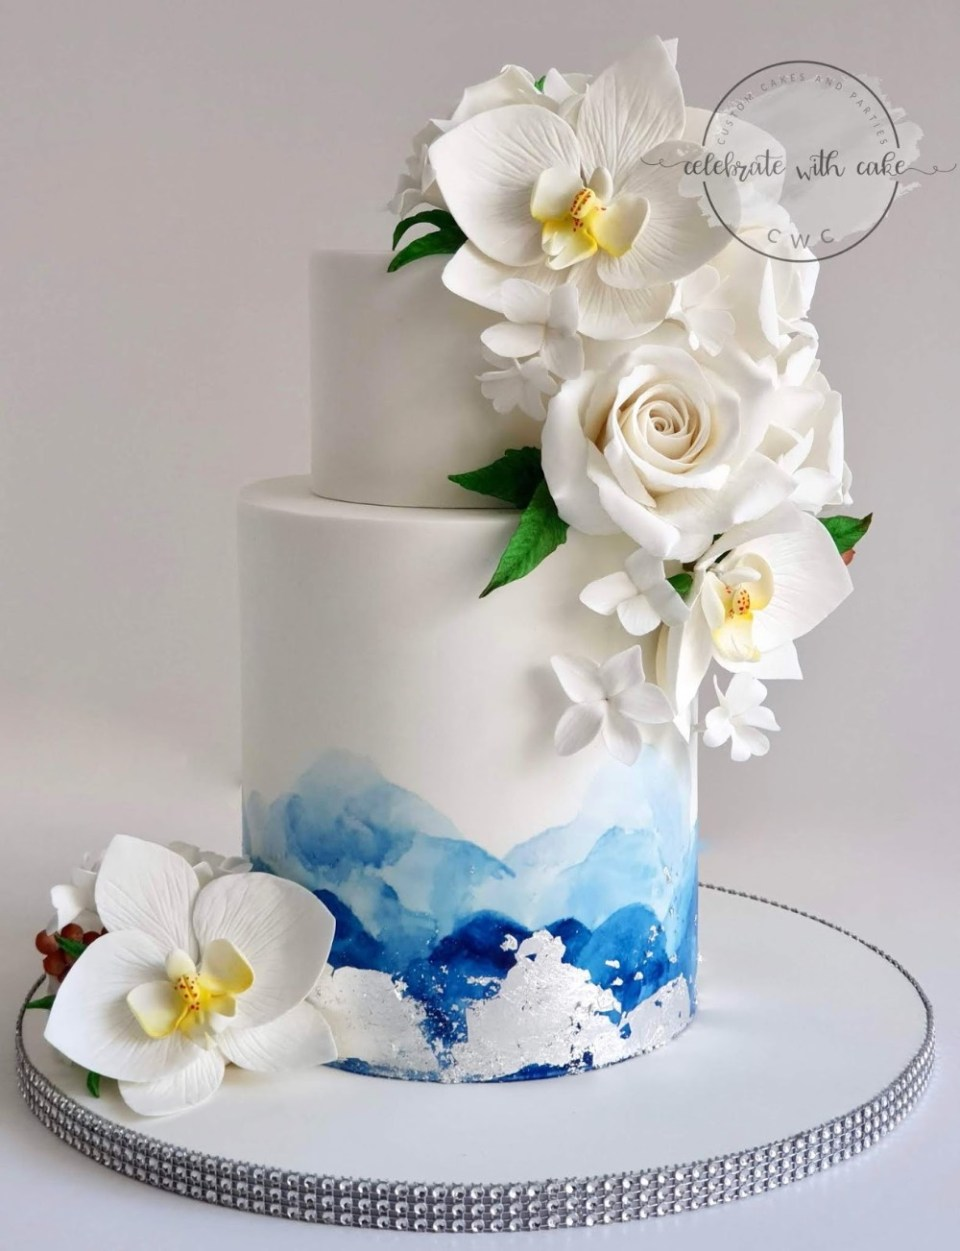 Celebrate With Cake Wedding Cake Singapore